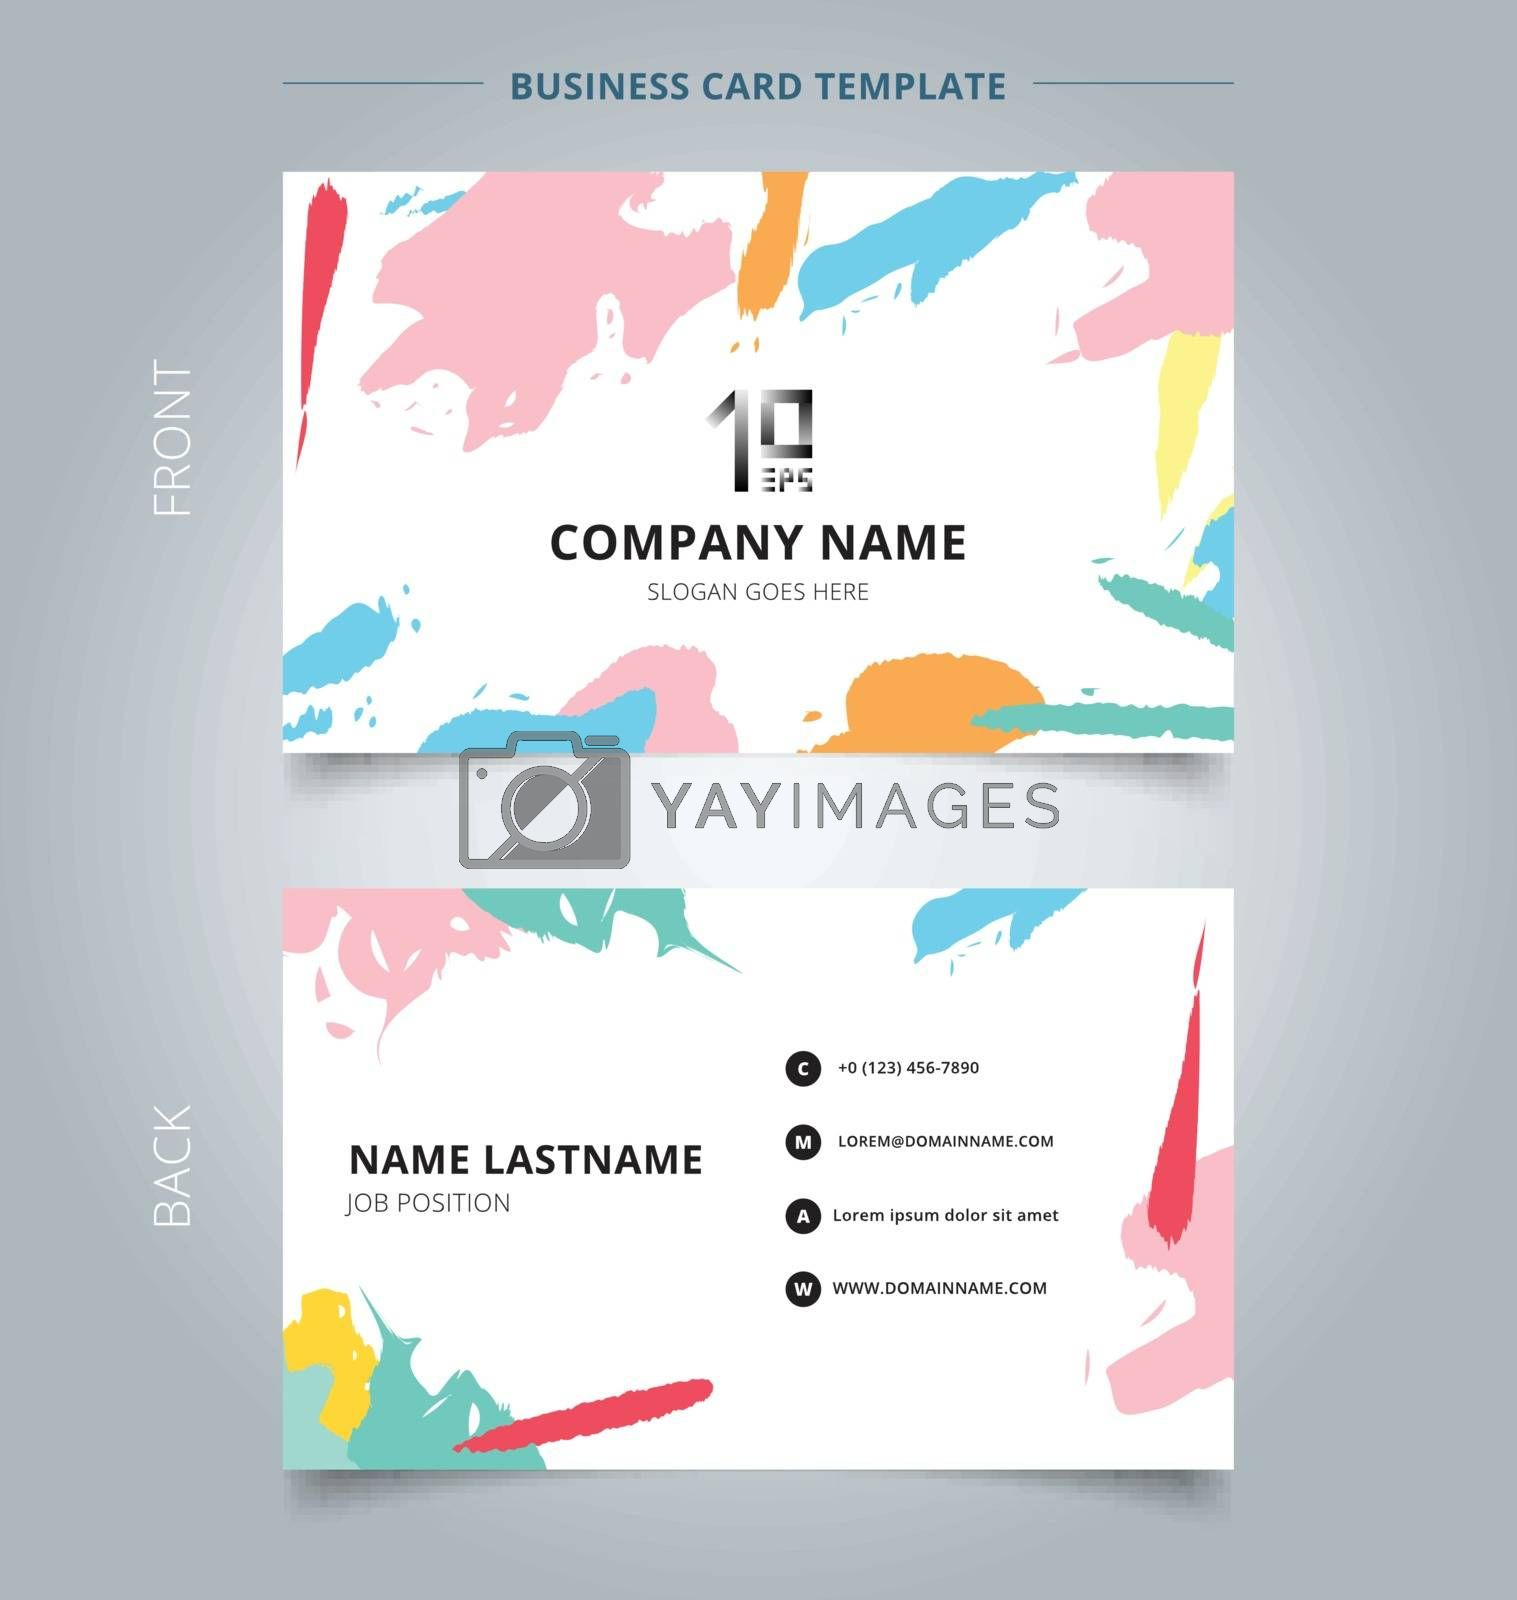 Name card template abstract shapes art pattern pastels color on white background. Vector illustration